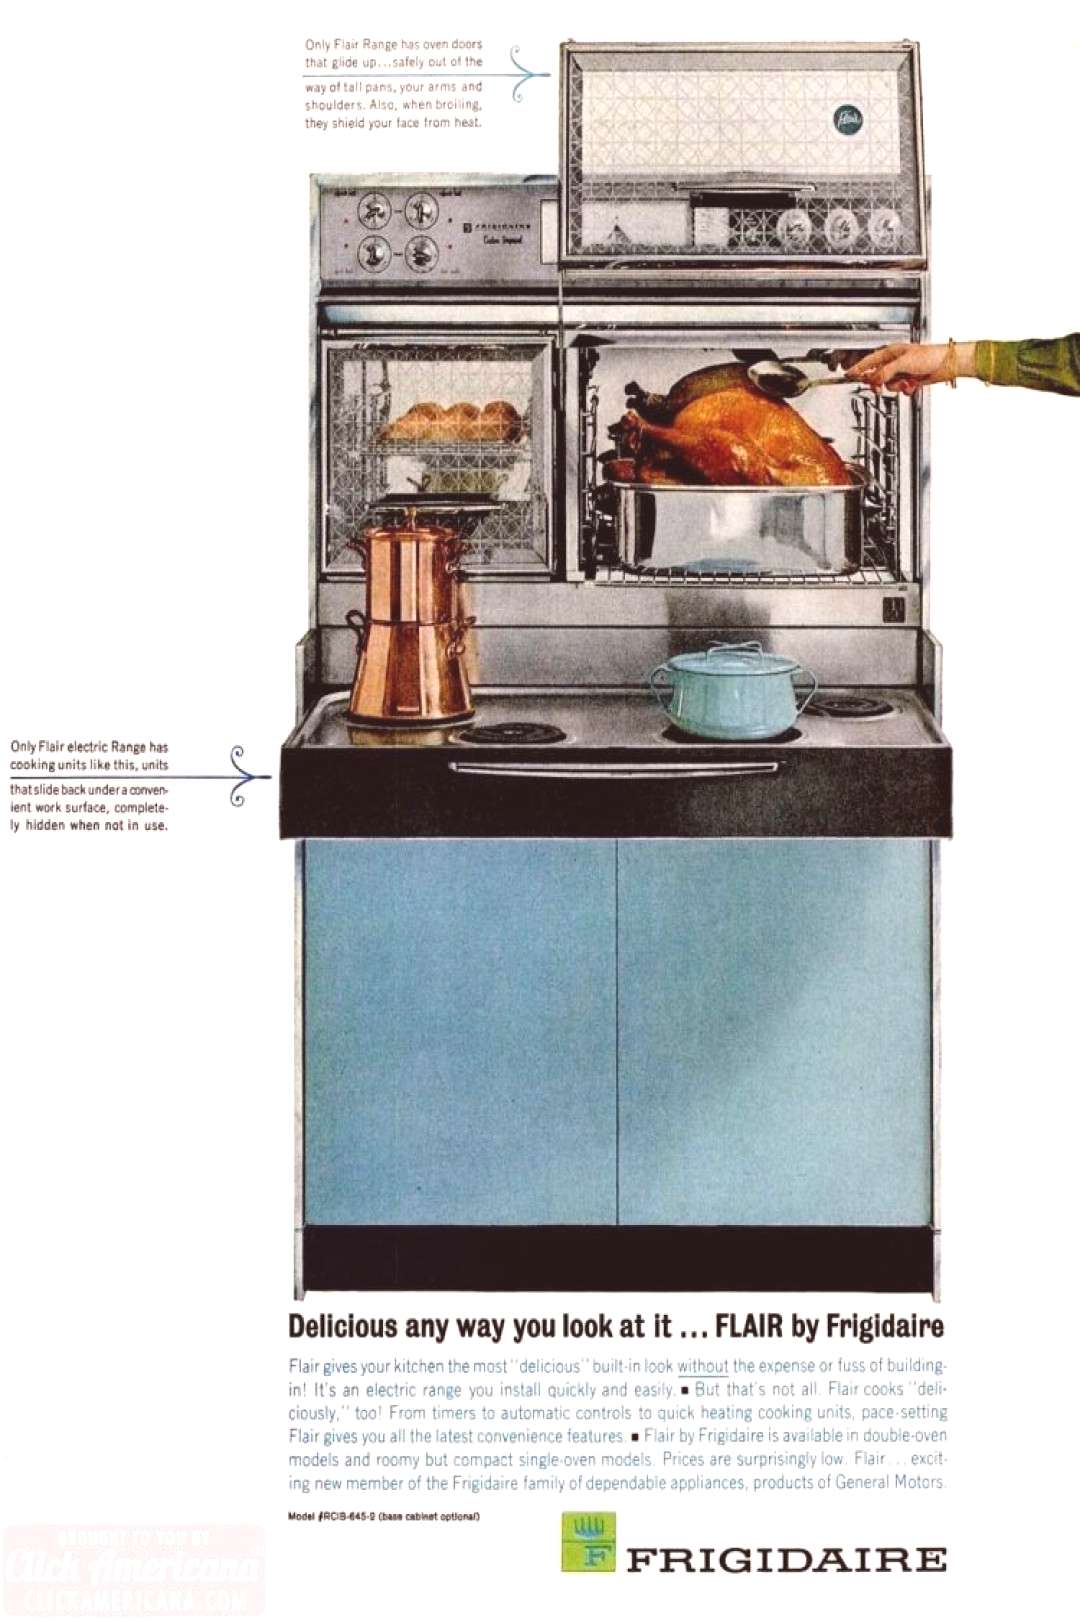 Vintage sixties kitchens with Flair ranges: Pull-out electric stoves and glass oven doors that open